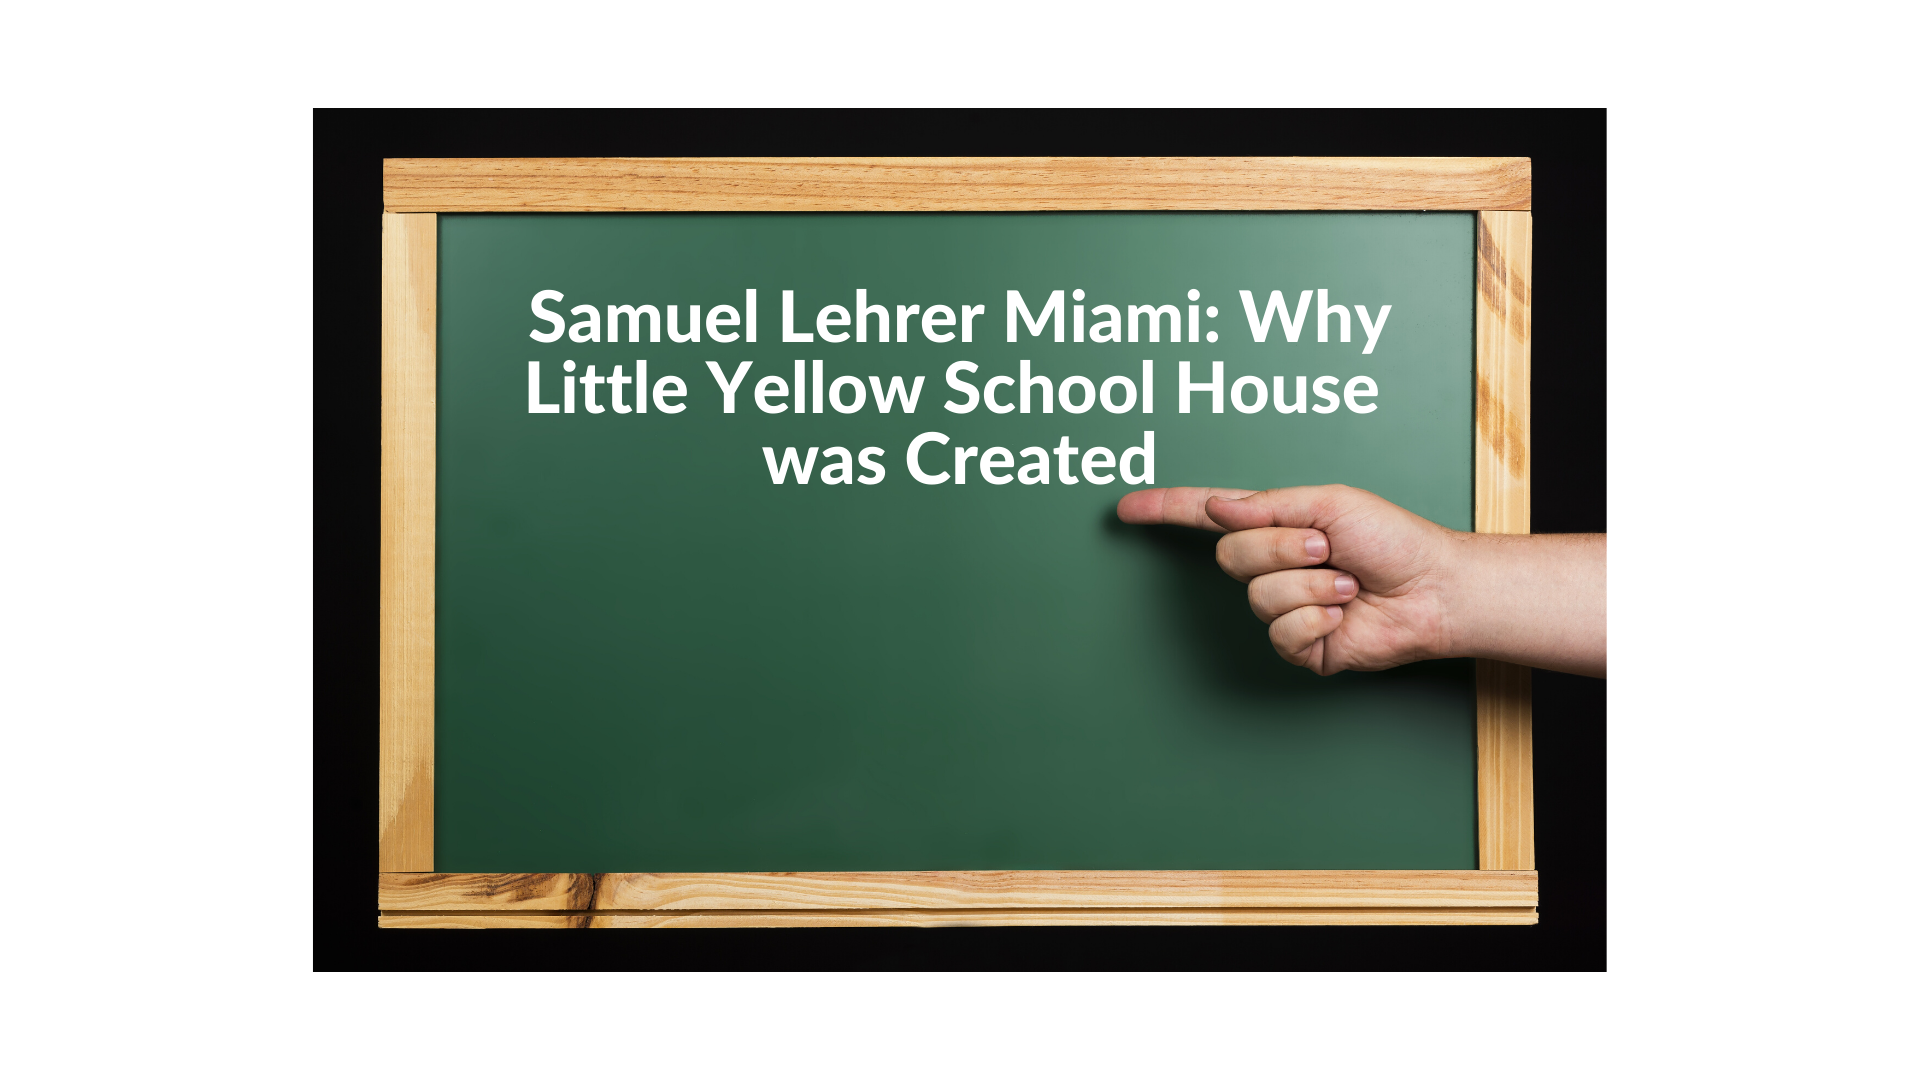 Samuel Lehrer Miami: Why Little Yellow School House was Created